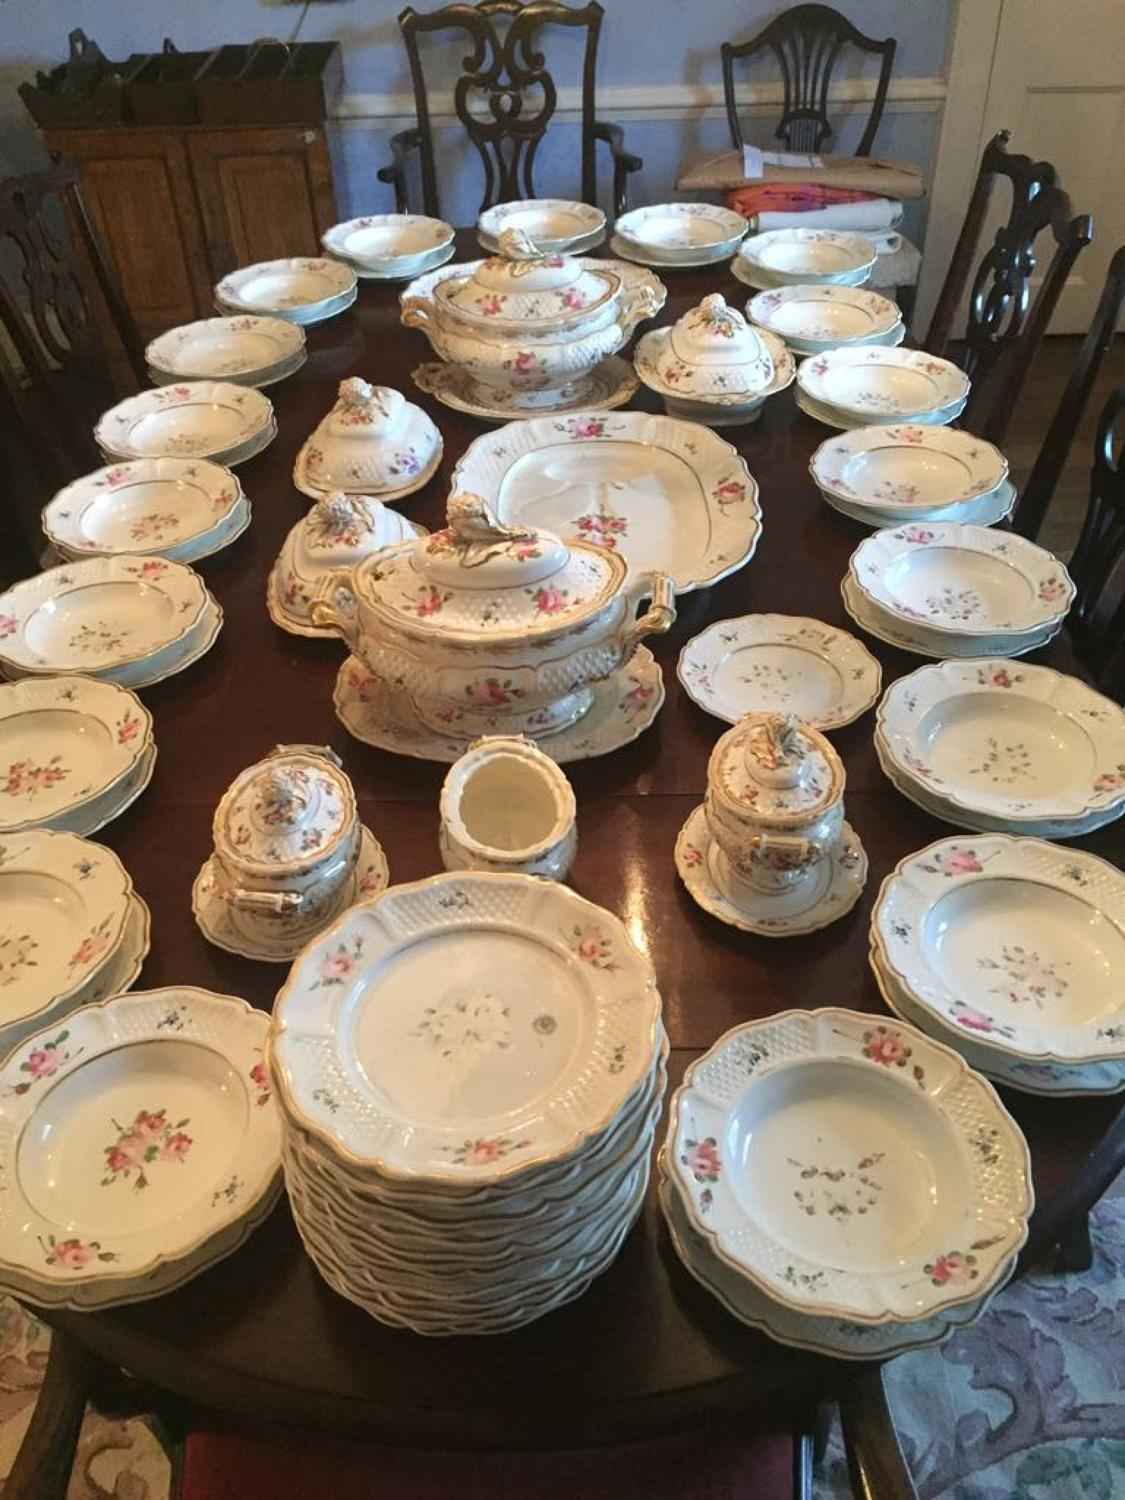 A large China dinner service